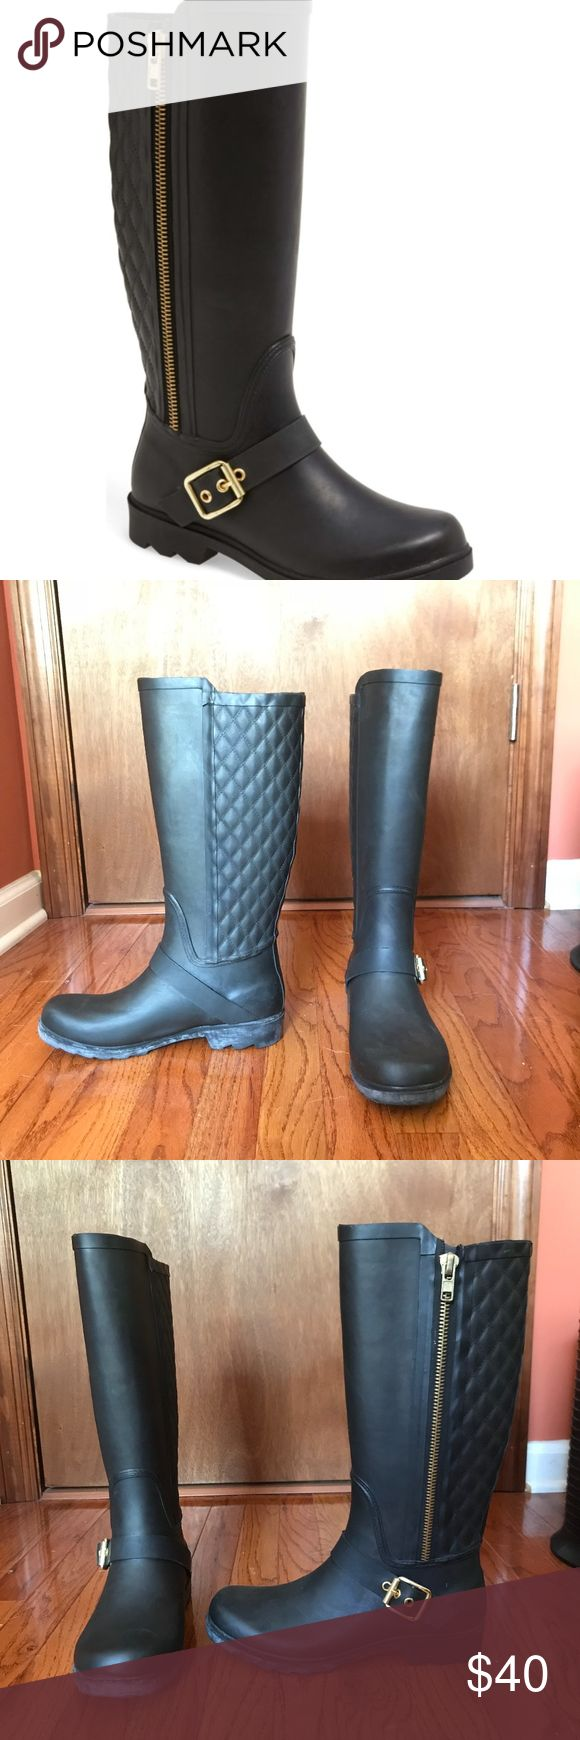 Steve Madden Rain Boots Great Condition Round Toe -6328